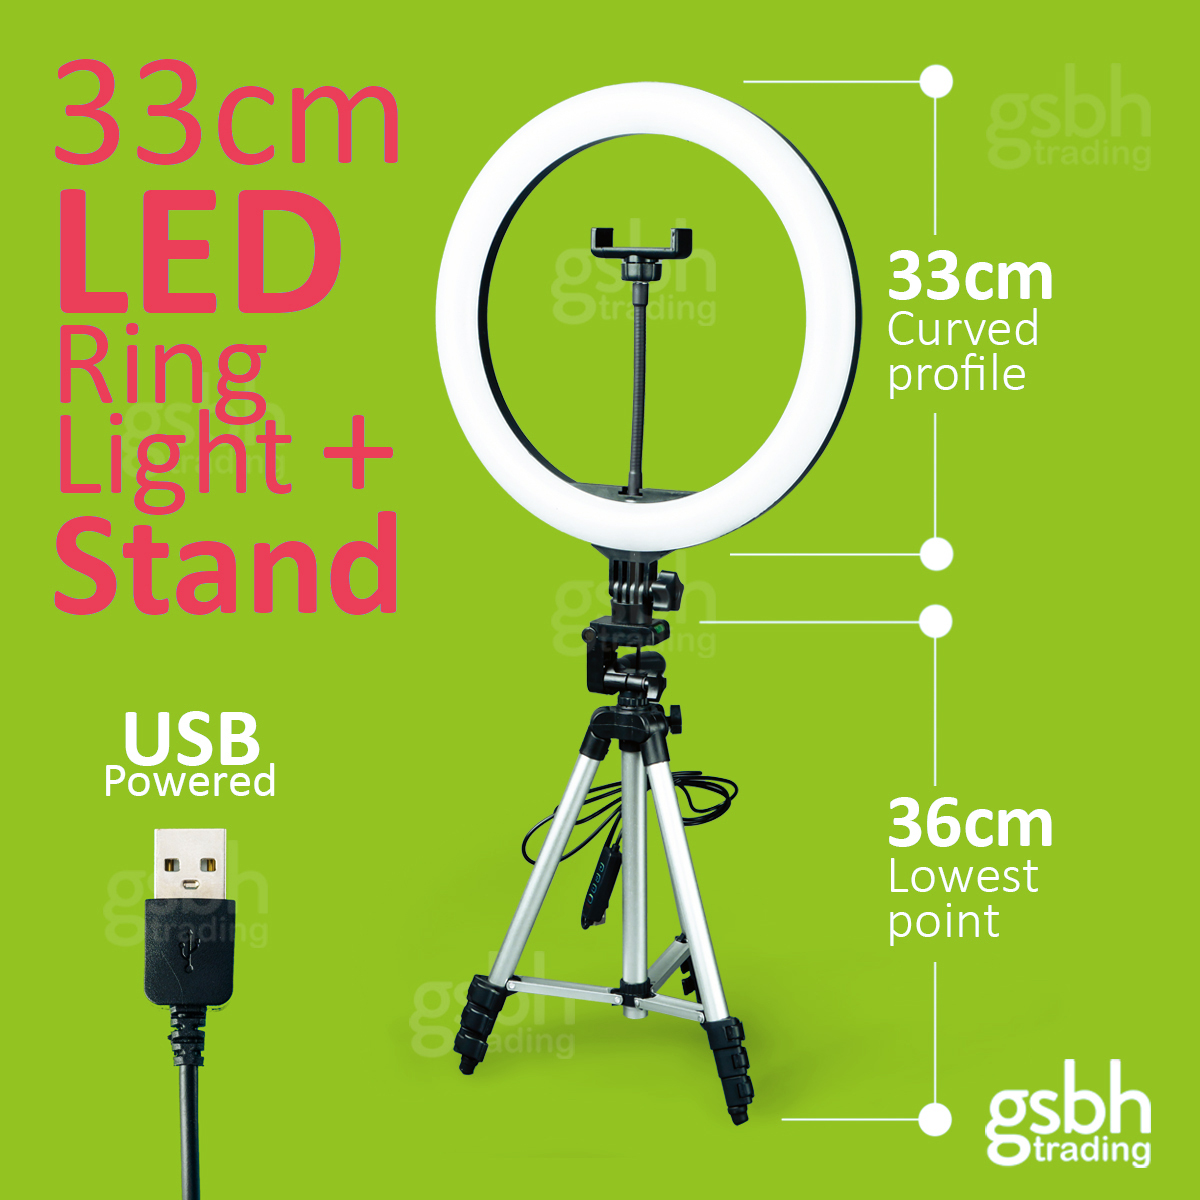 33 Cm 13 Inches Ring Light With Stand 33cm 13 Set Led Photo Studio Light Photography Video Ringlight For Smartphone Camera Vlog Blog With Phone Holder Tripod 3120 Dimmable 3 Light Modes In) is a unit of length in the imperial and us customary systems of measurement. 33 cm 13 inches ring light with stand 33cm 13 set led photo studio light photography video ringlight for smartphone camera vlog blog with phone